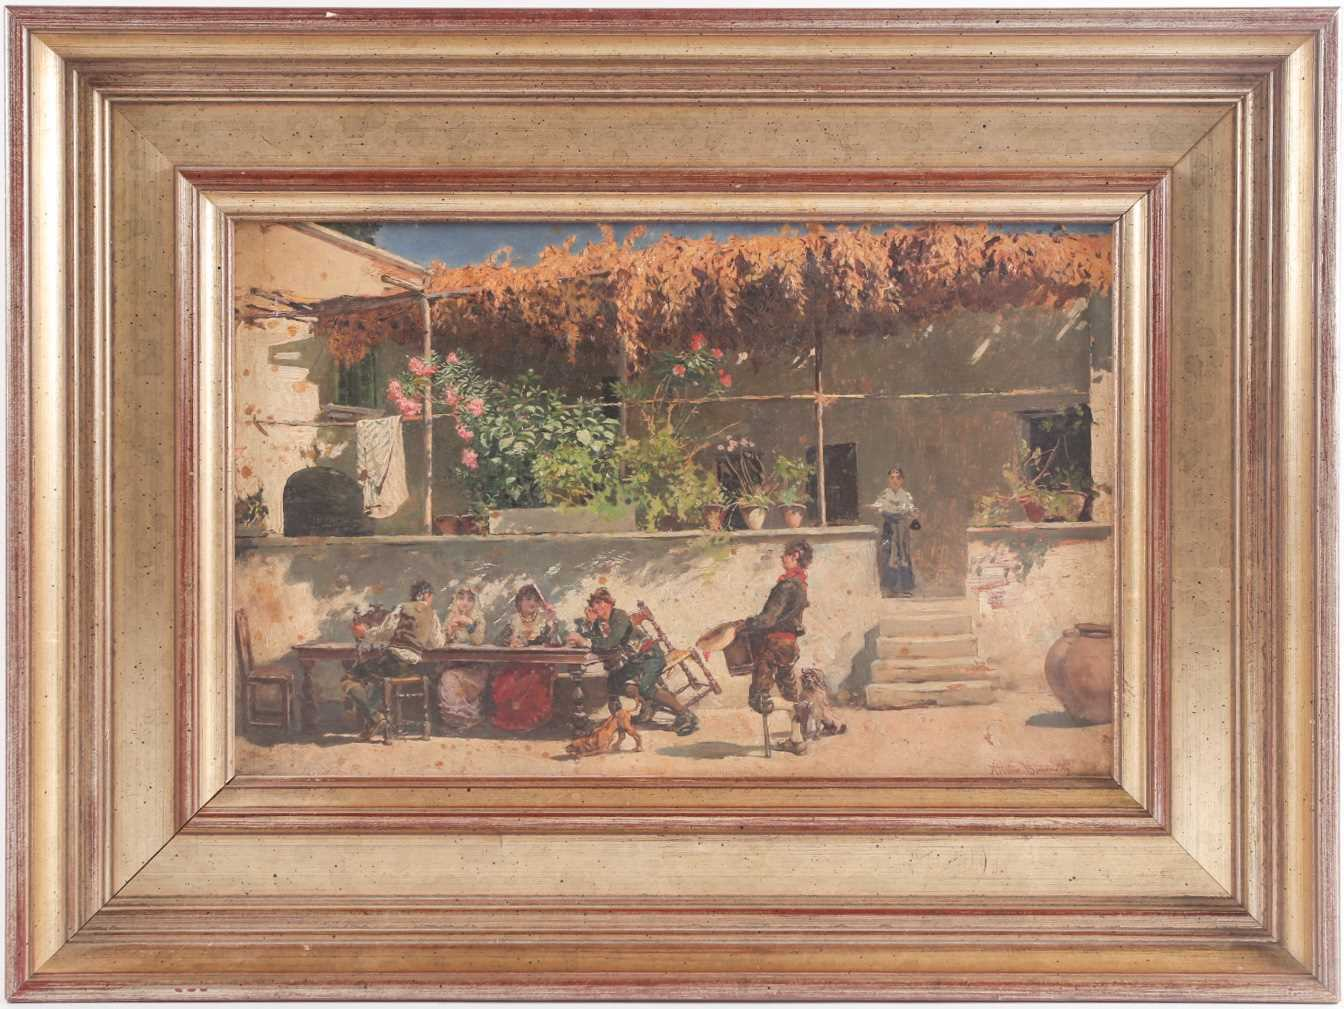 Attilio Simonetti (1874-1922), Waiting of lunch in the mid day sun, oil on panel, signed lower